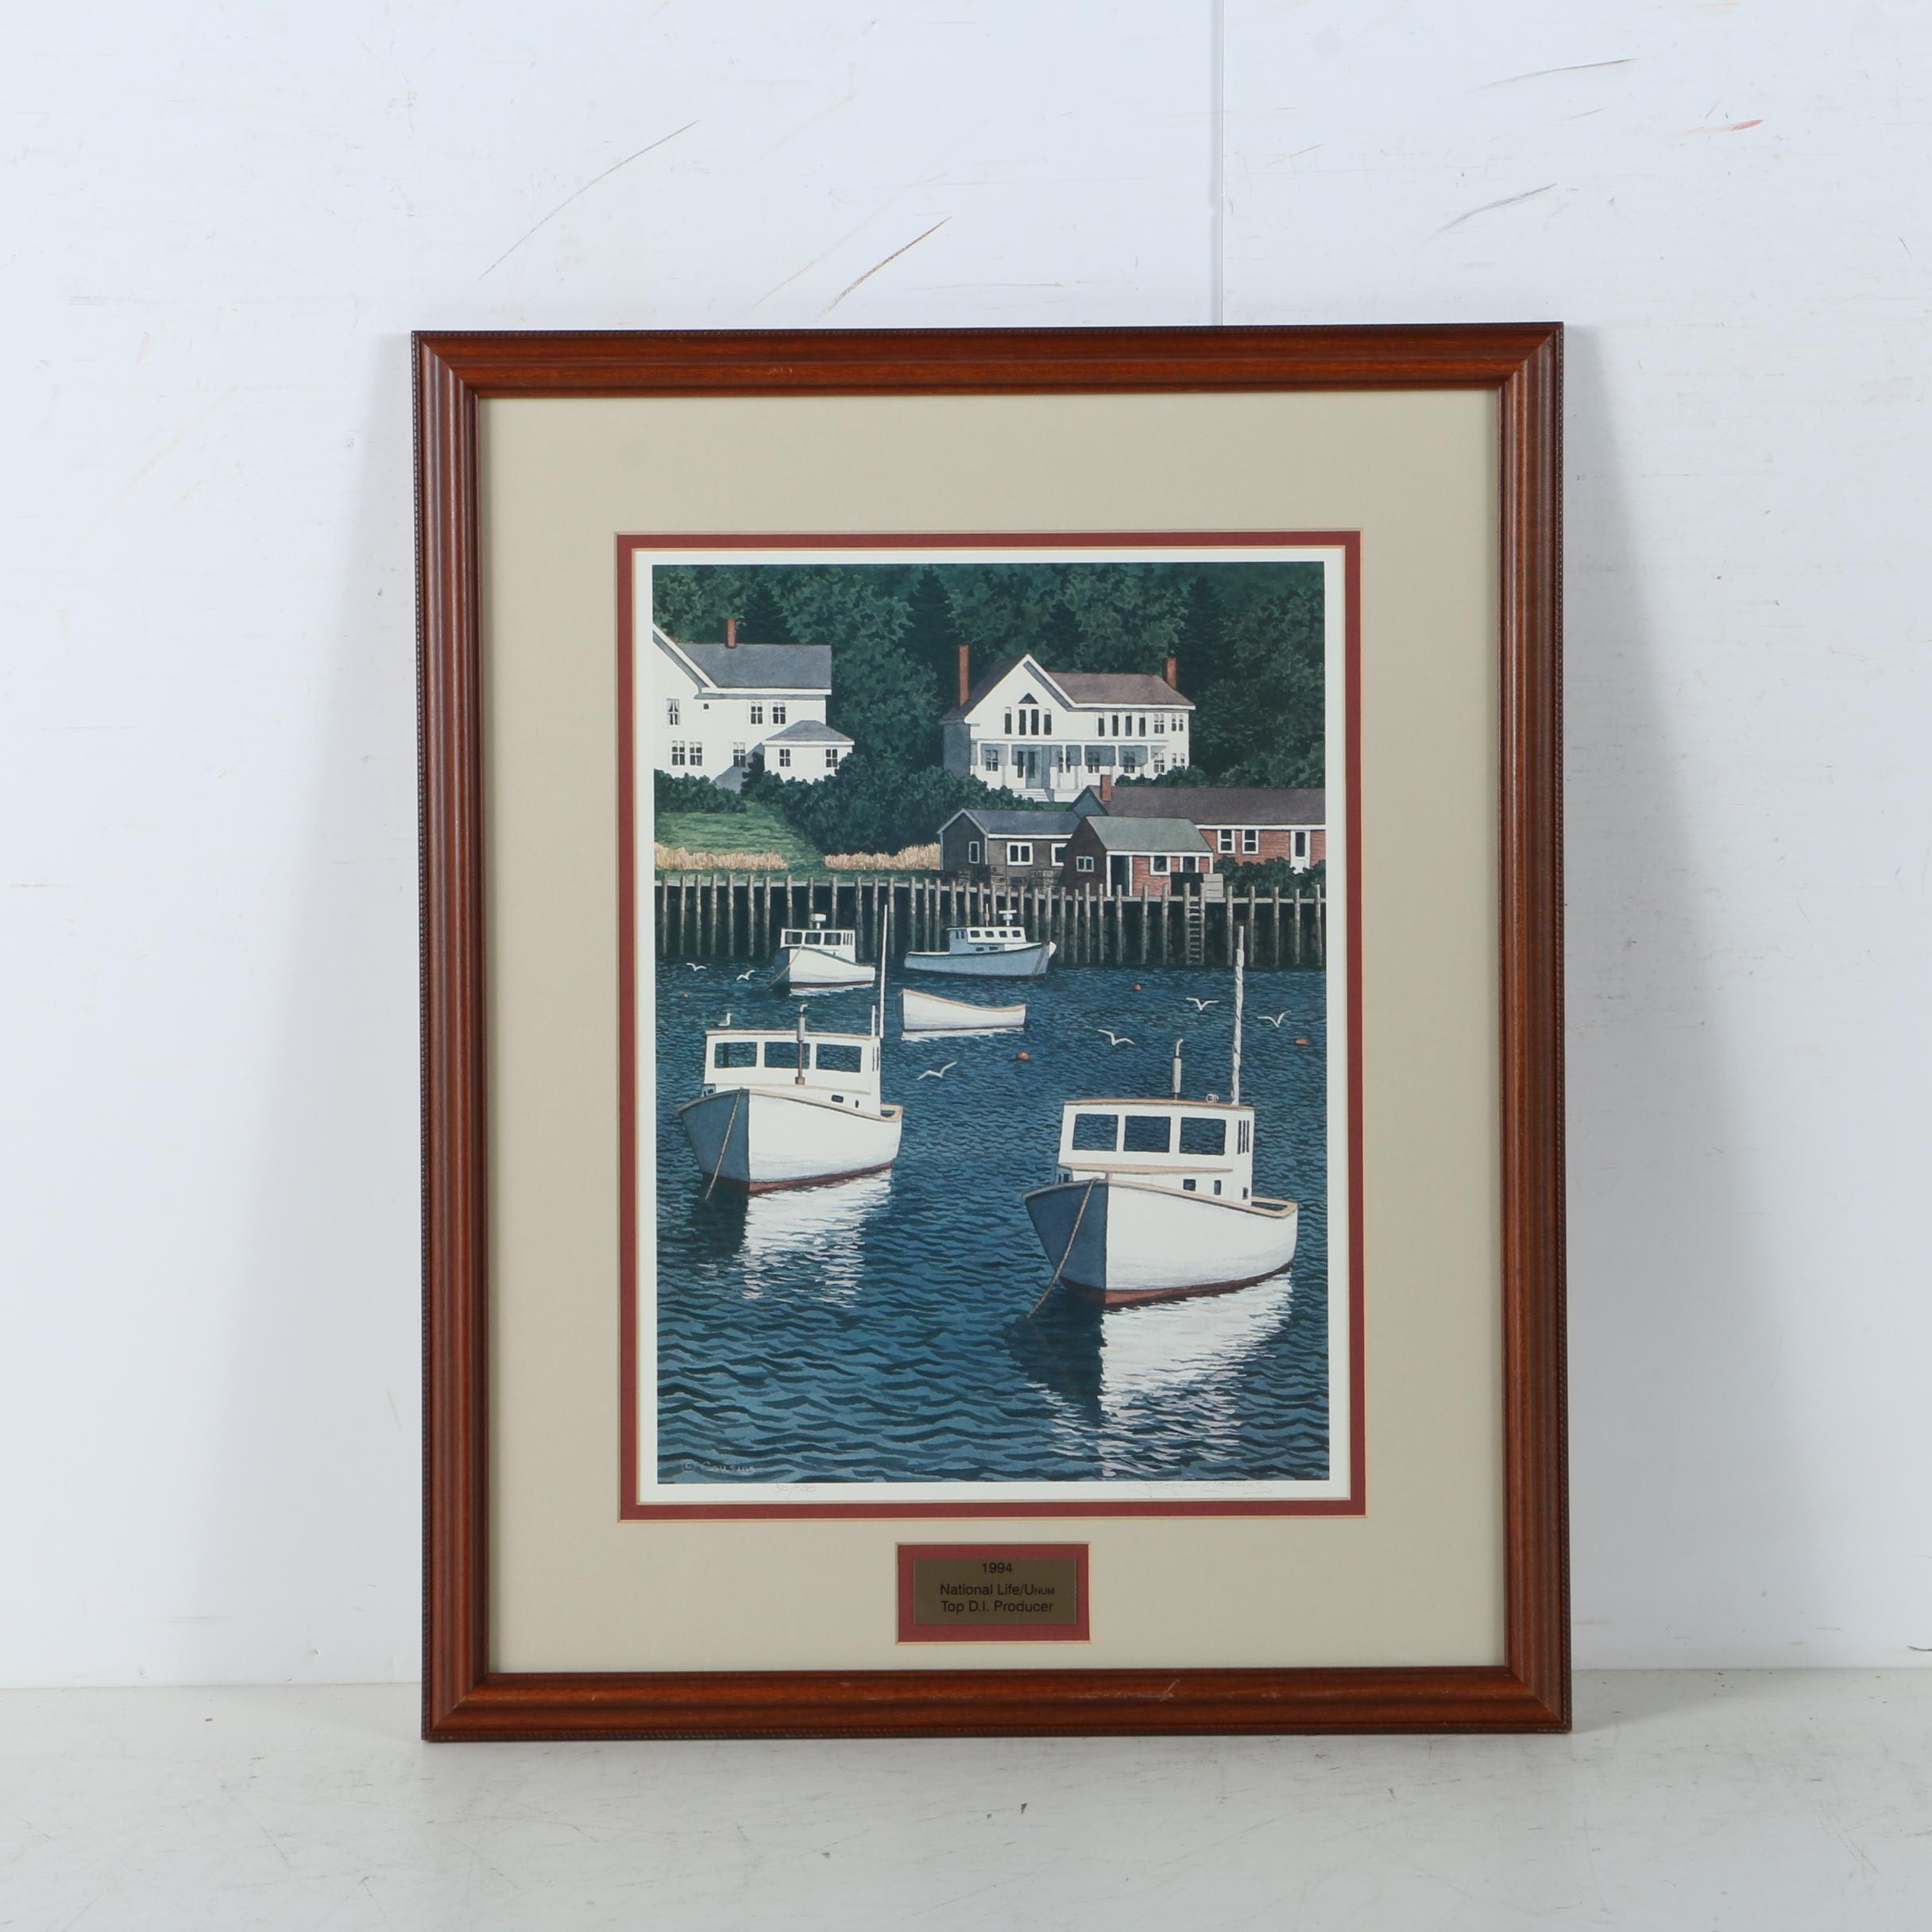 Joseph Cousins Limited Edition Offset Lithograph of a Coastal Scene